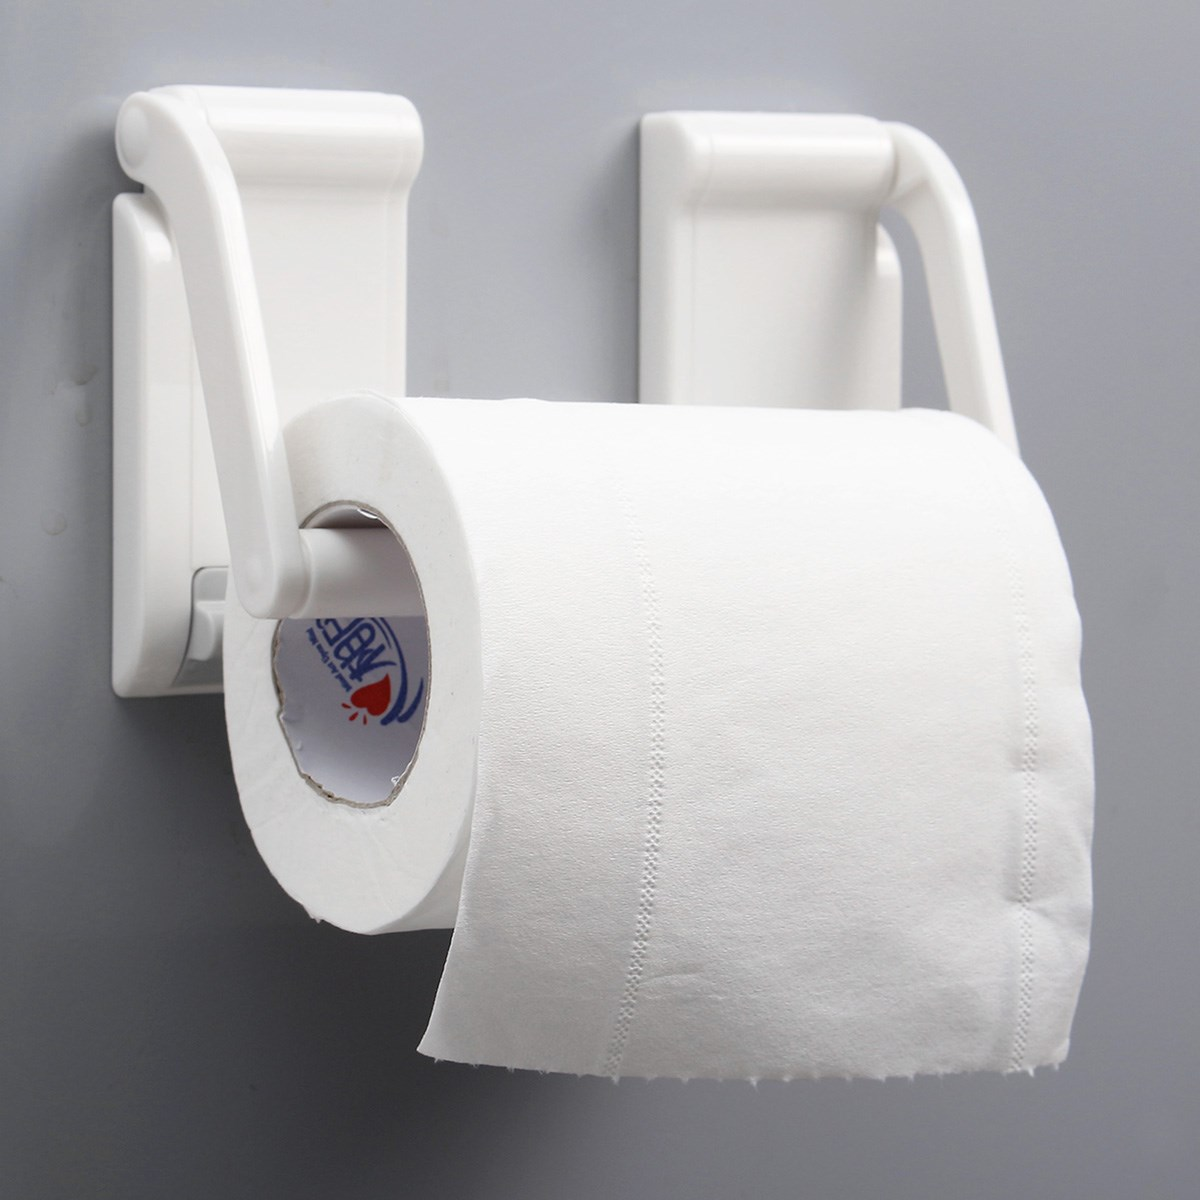 90 x 45mm kitchen bathroom plastic magnetic paper holder space saving paper towel roll rack holder hold dispenser - Commercial Bathroom Paper Towel Dispenser